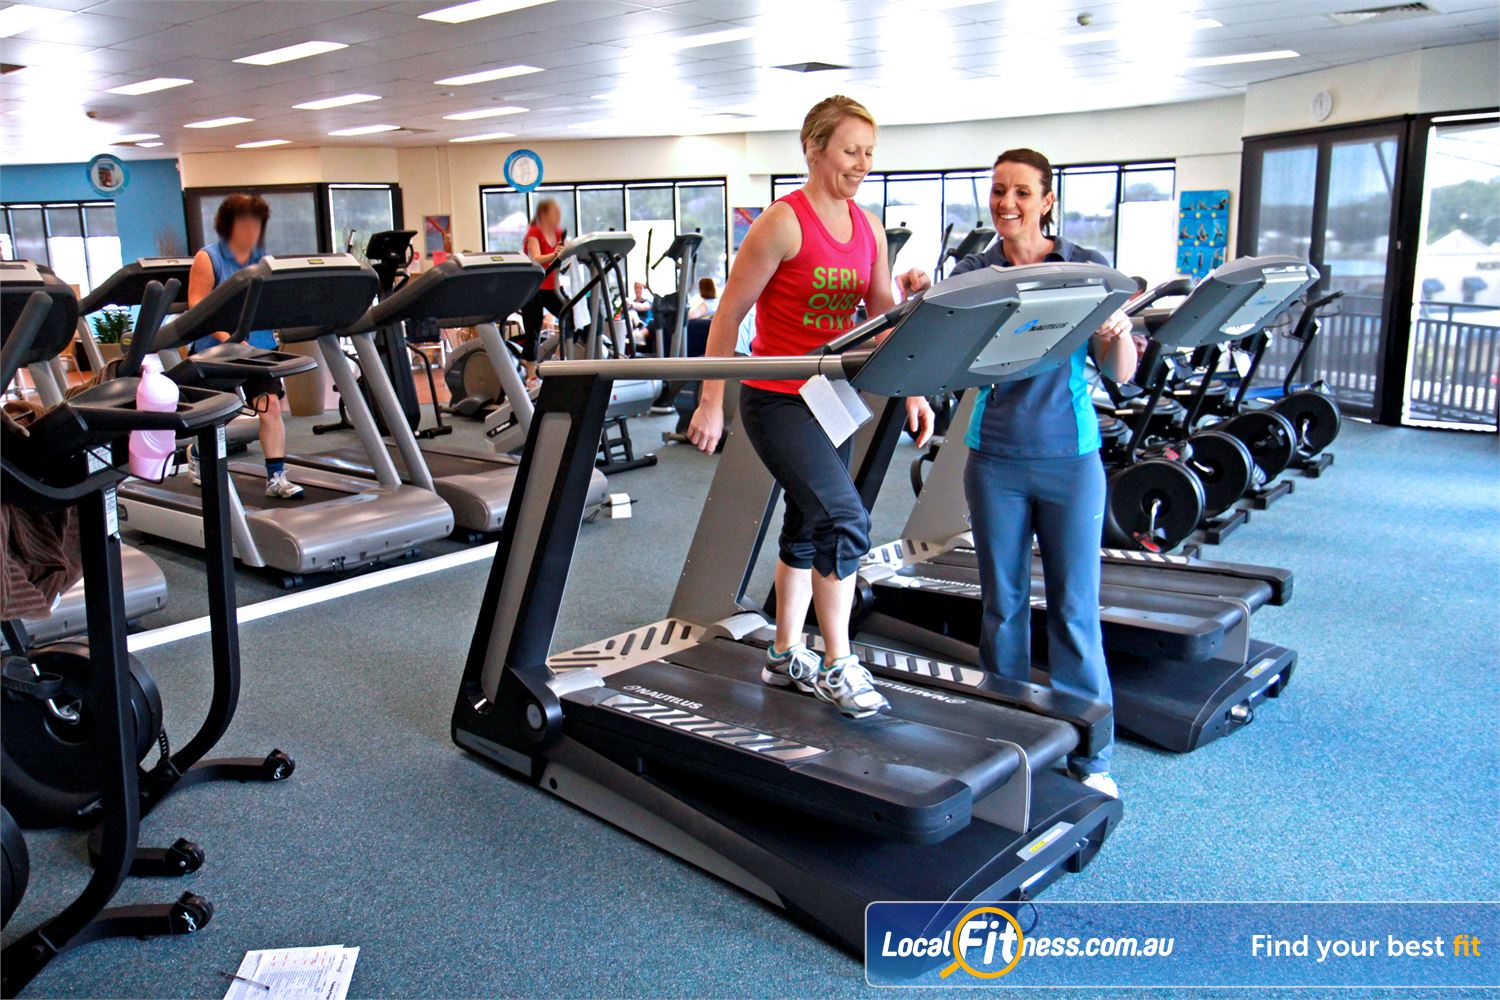 Fernwood Fitness Near Kallangur Luxury training with personal entertainment units on our machine.